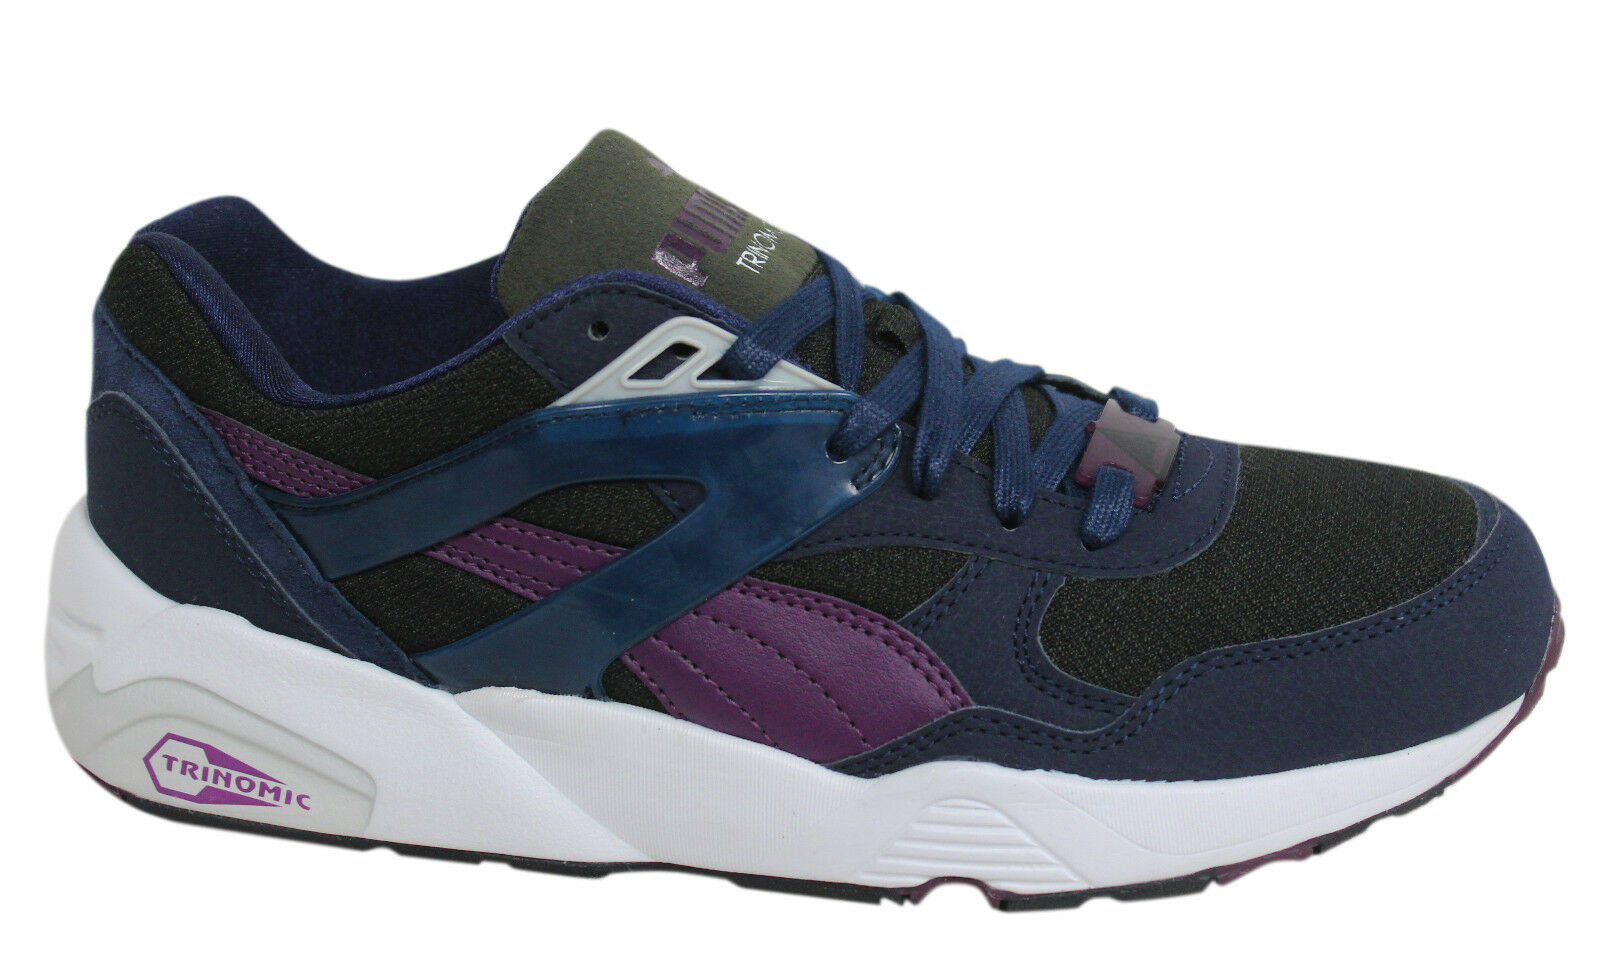 Puma R698 Trinomic Lace Up Navy Synthetic Homme Trainers 359286 01 D38